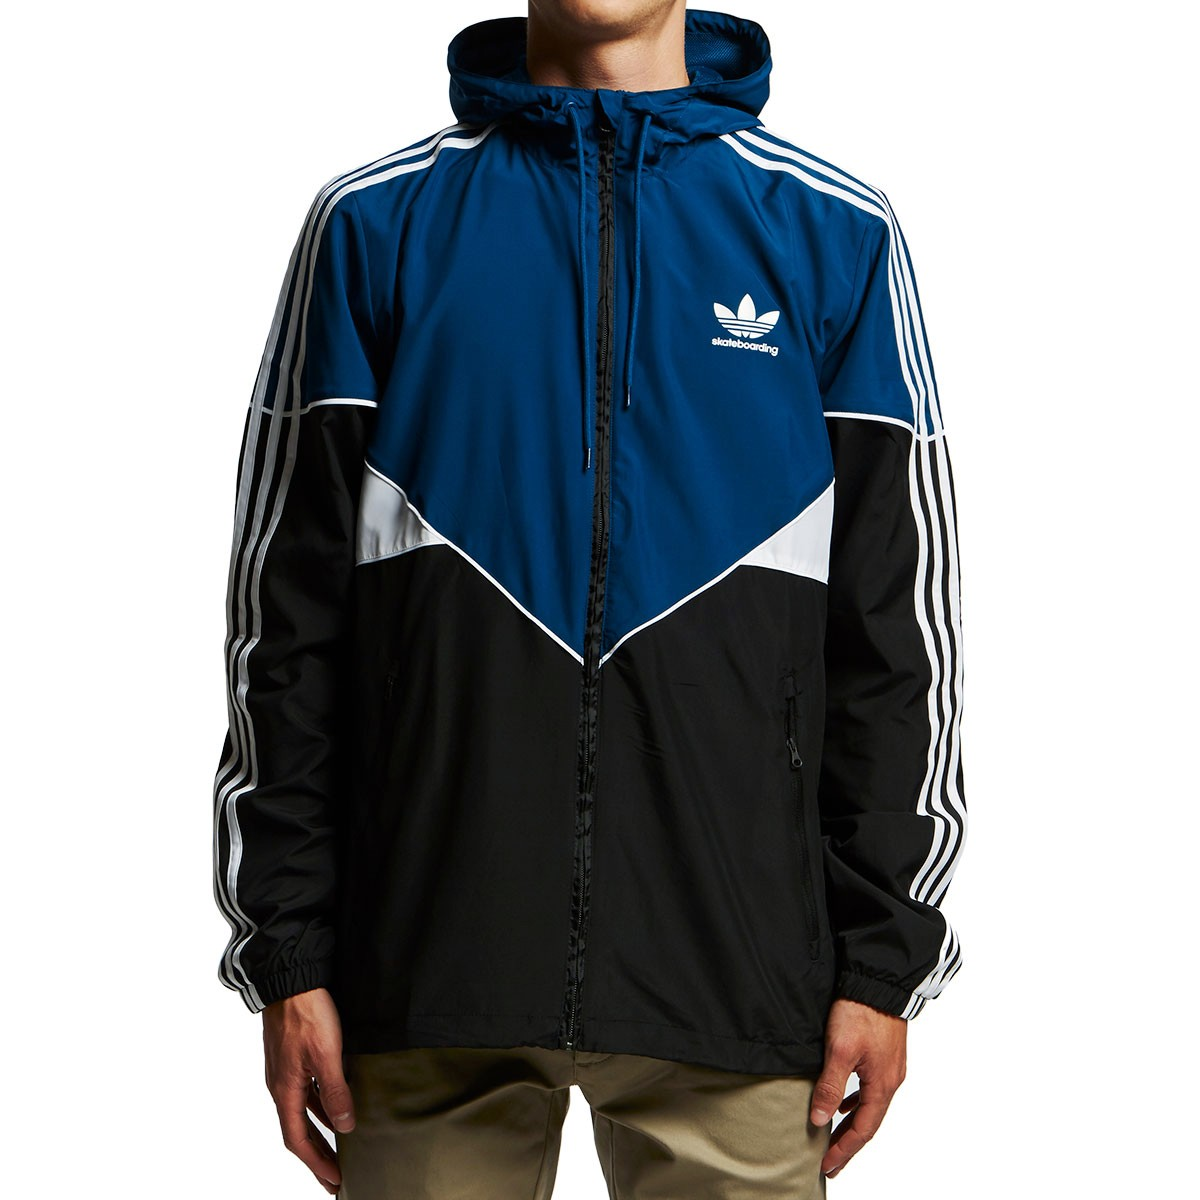 bc65eb3c4 Adidas Premiere Windbreaker Jacket - Black/Blue Night/White